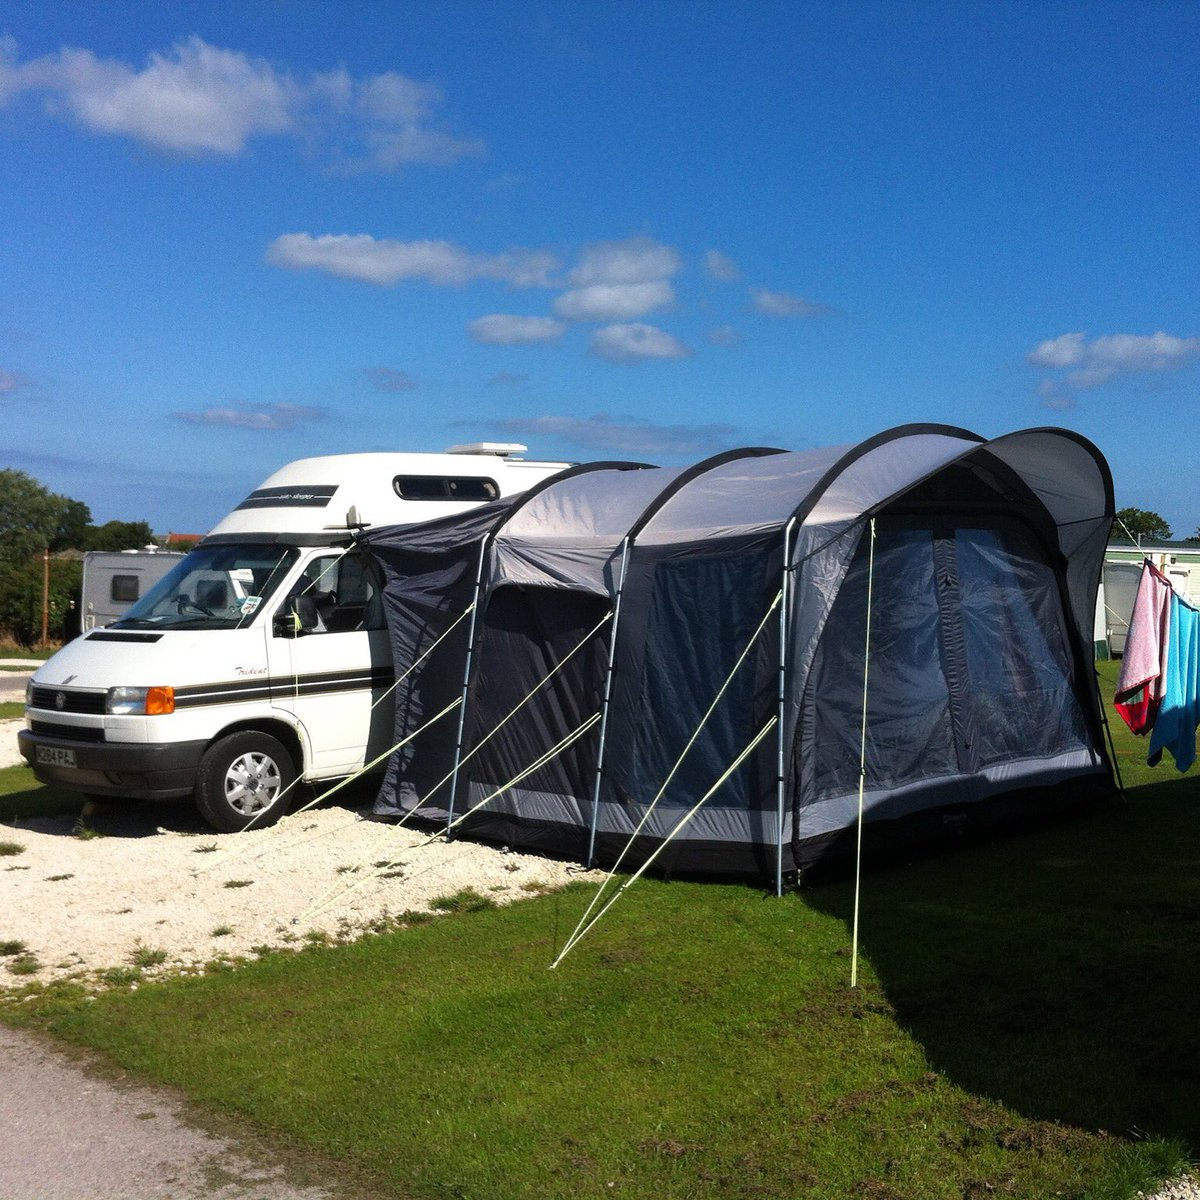 Damian Summers On Twitter Outwell Country Road Awning With Accessories For Sale EBay Tco ZJwJkK8oAn Vanlife Camping